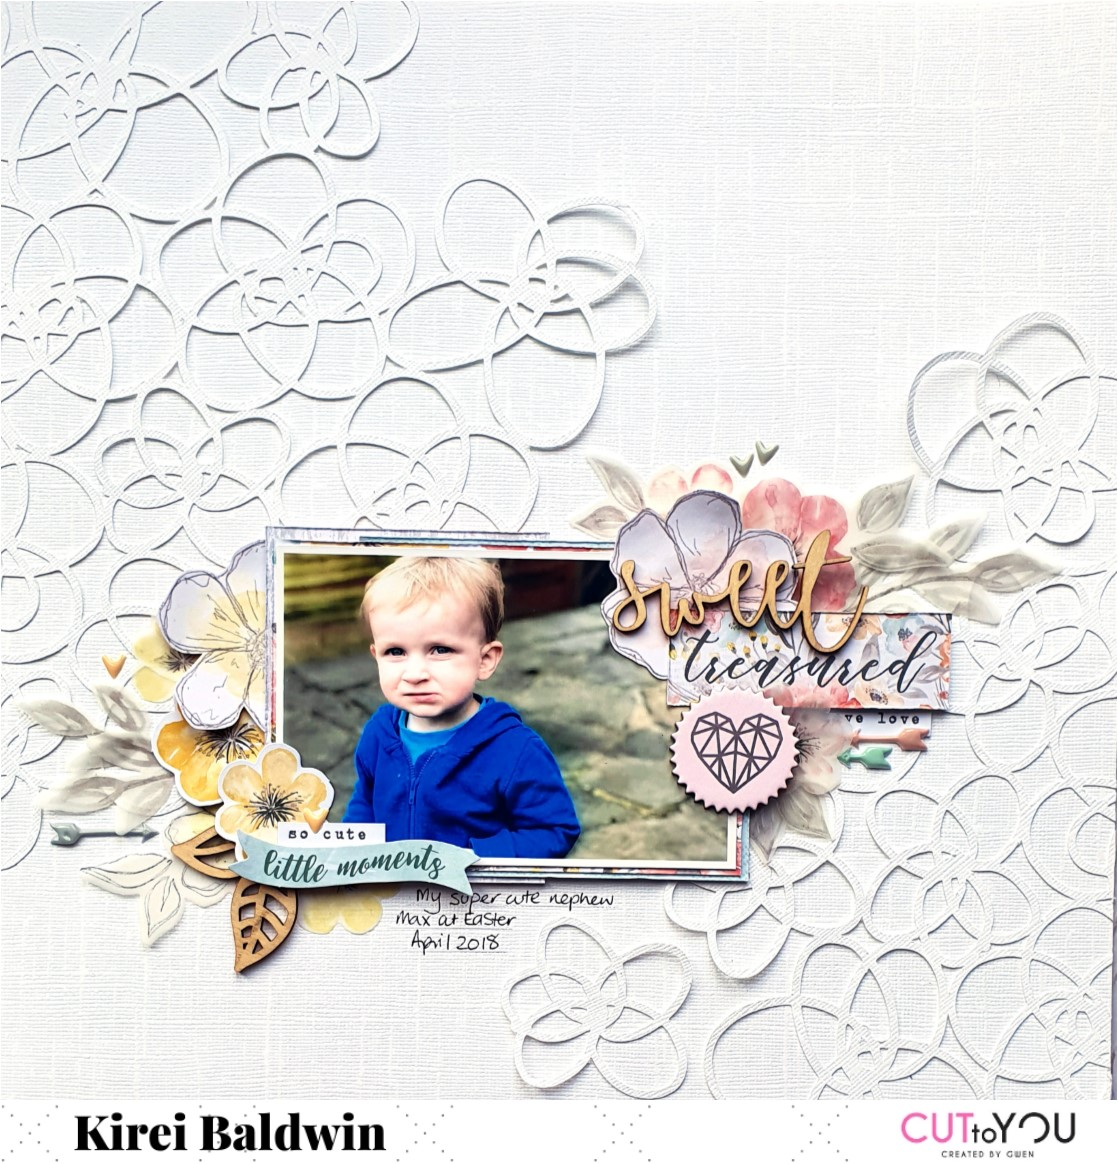 CutToYou_KireiBaldwin_Sweet_layoutB_April2020_withfooter